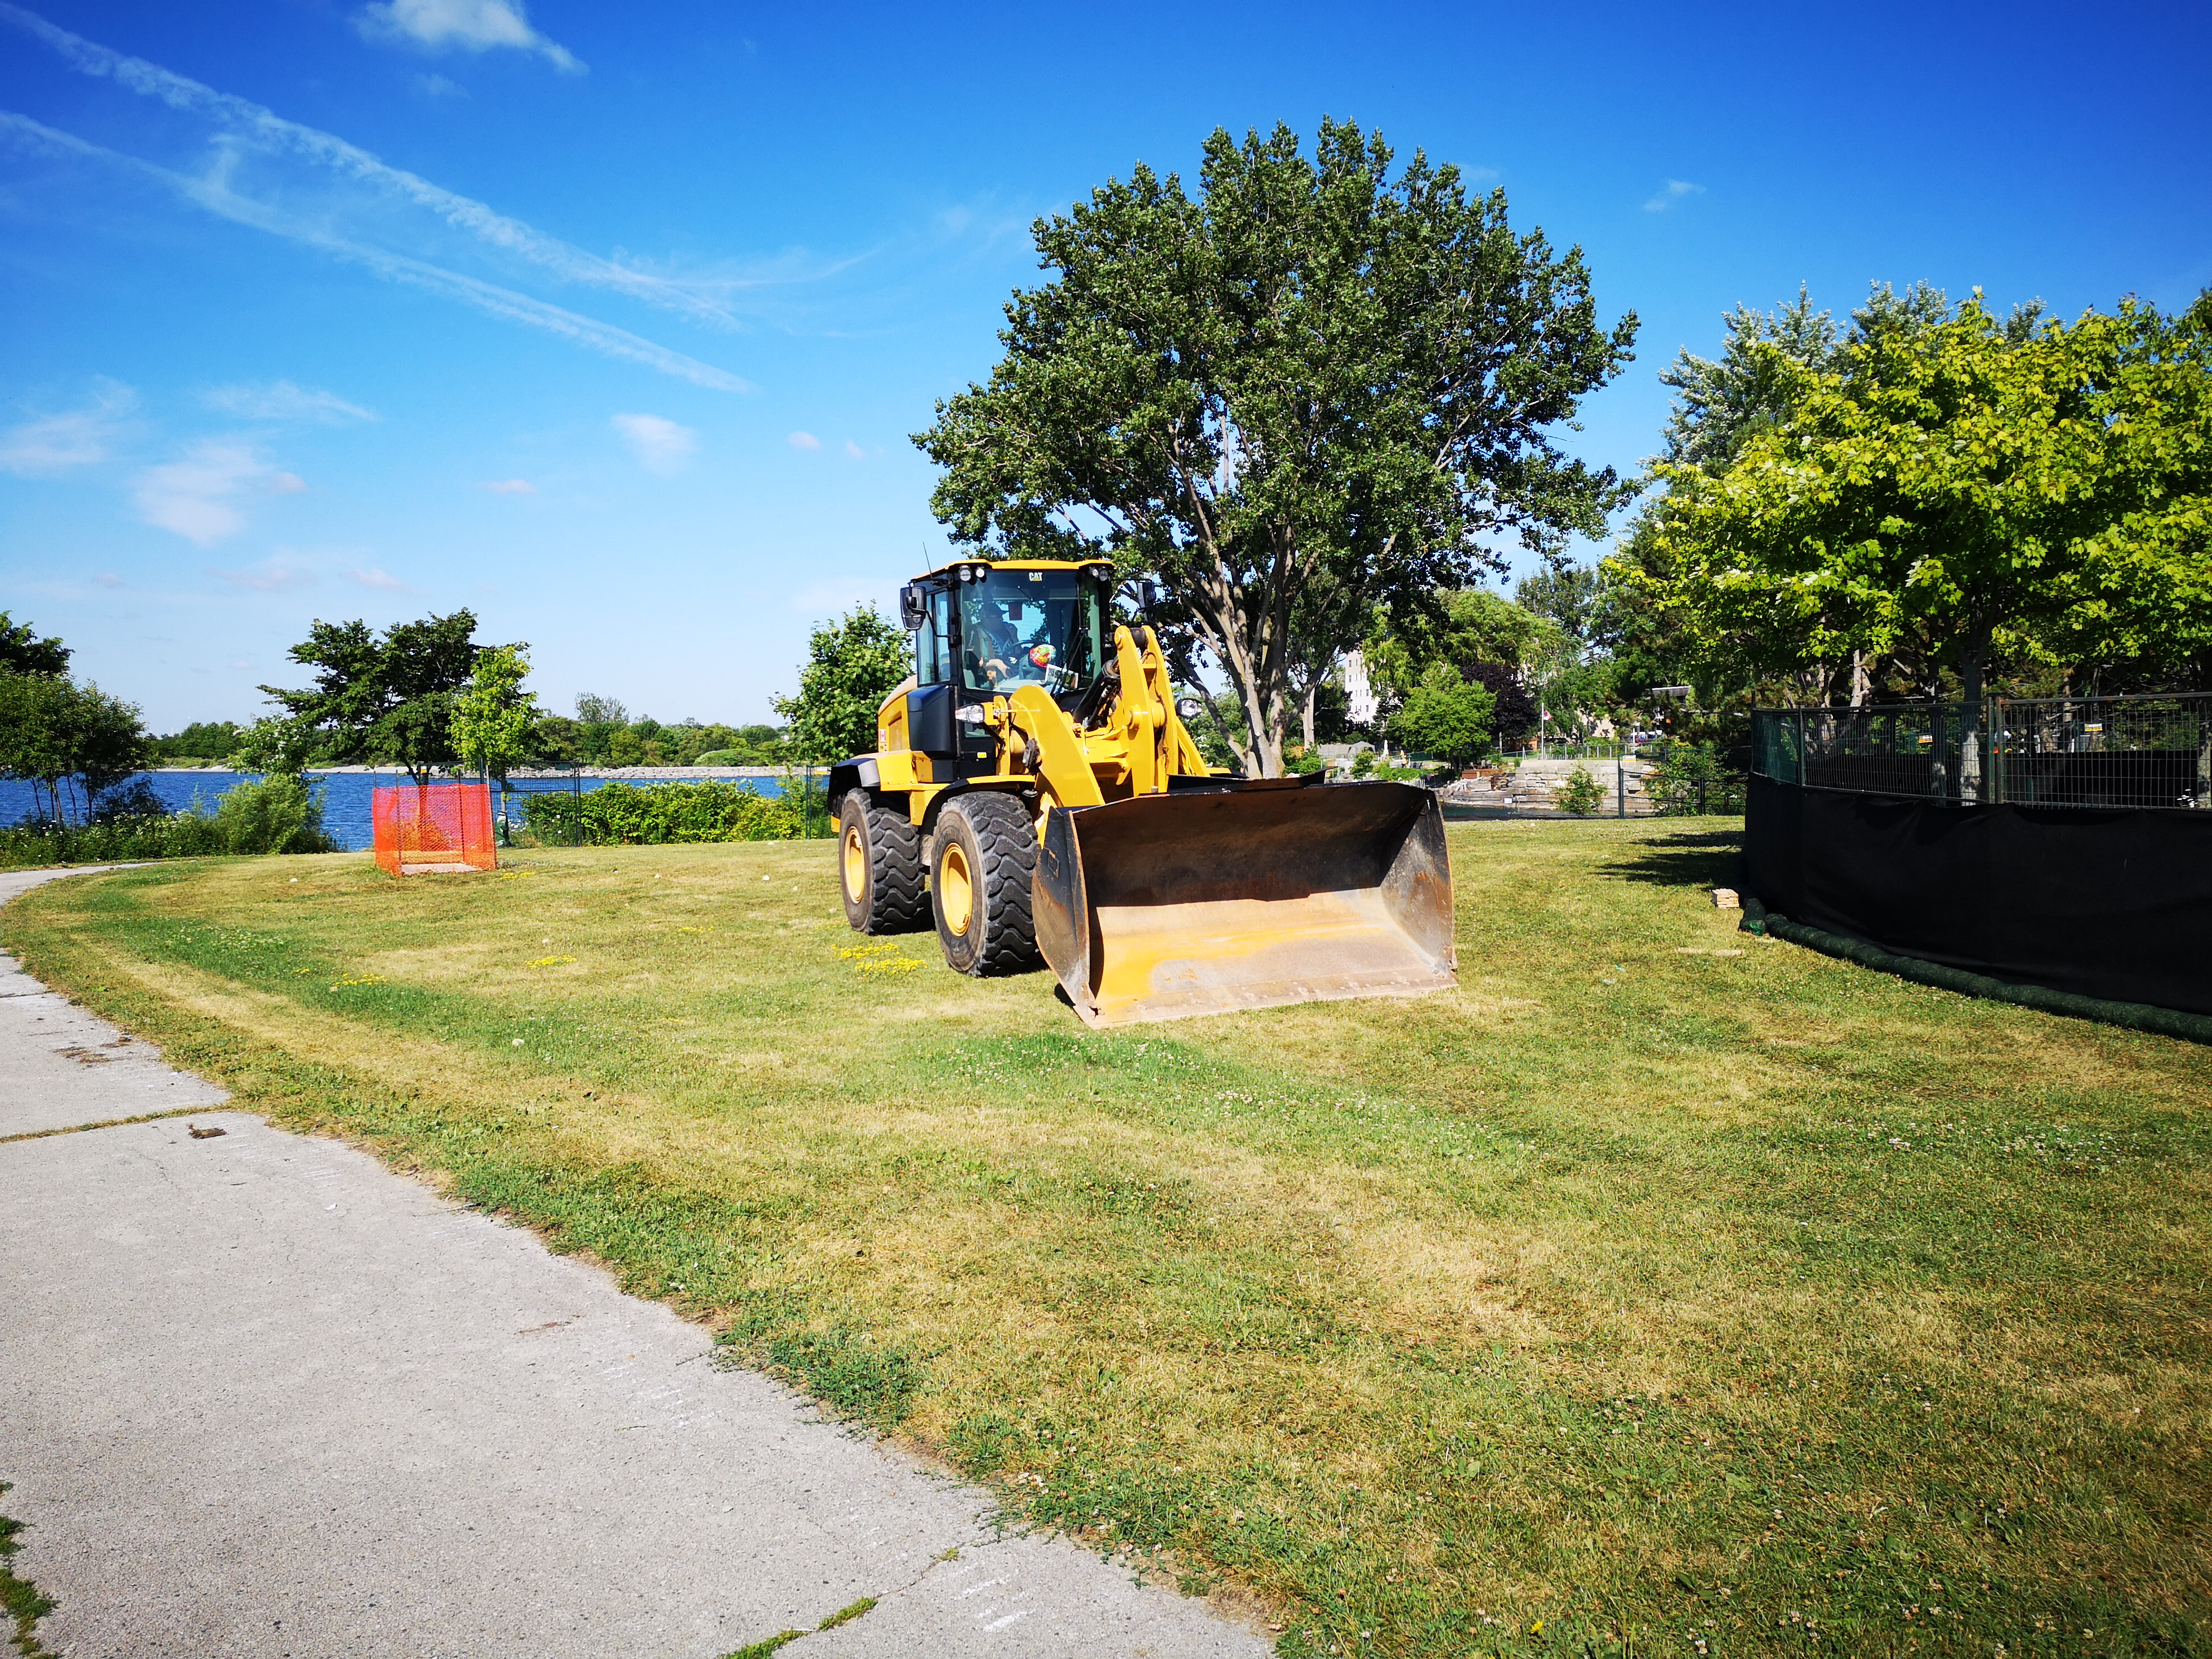 Fencing and construction equipment at Rotary Peace Park. Source: TRCA, 2018.